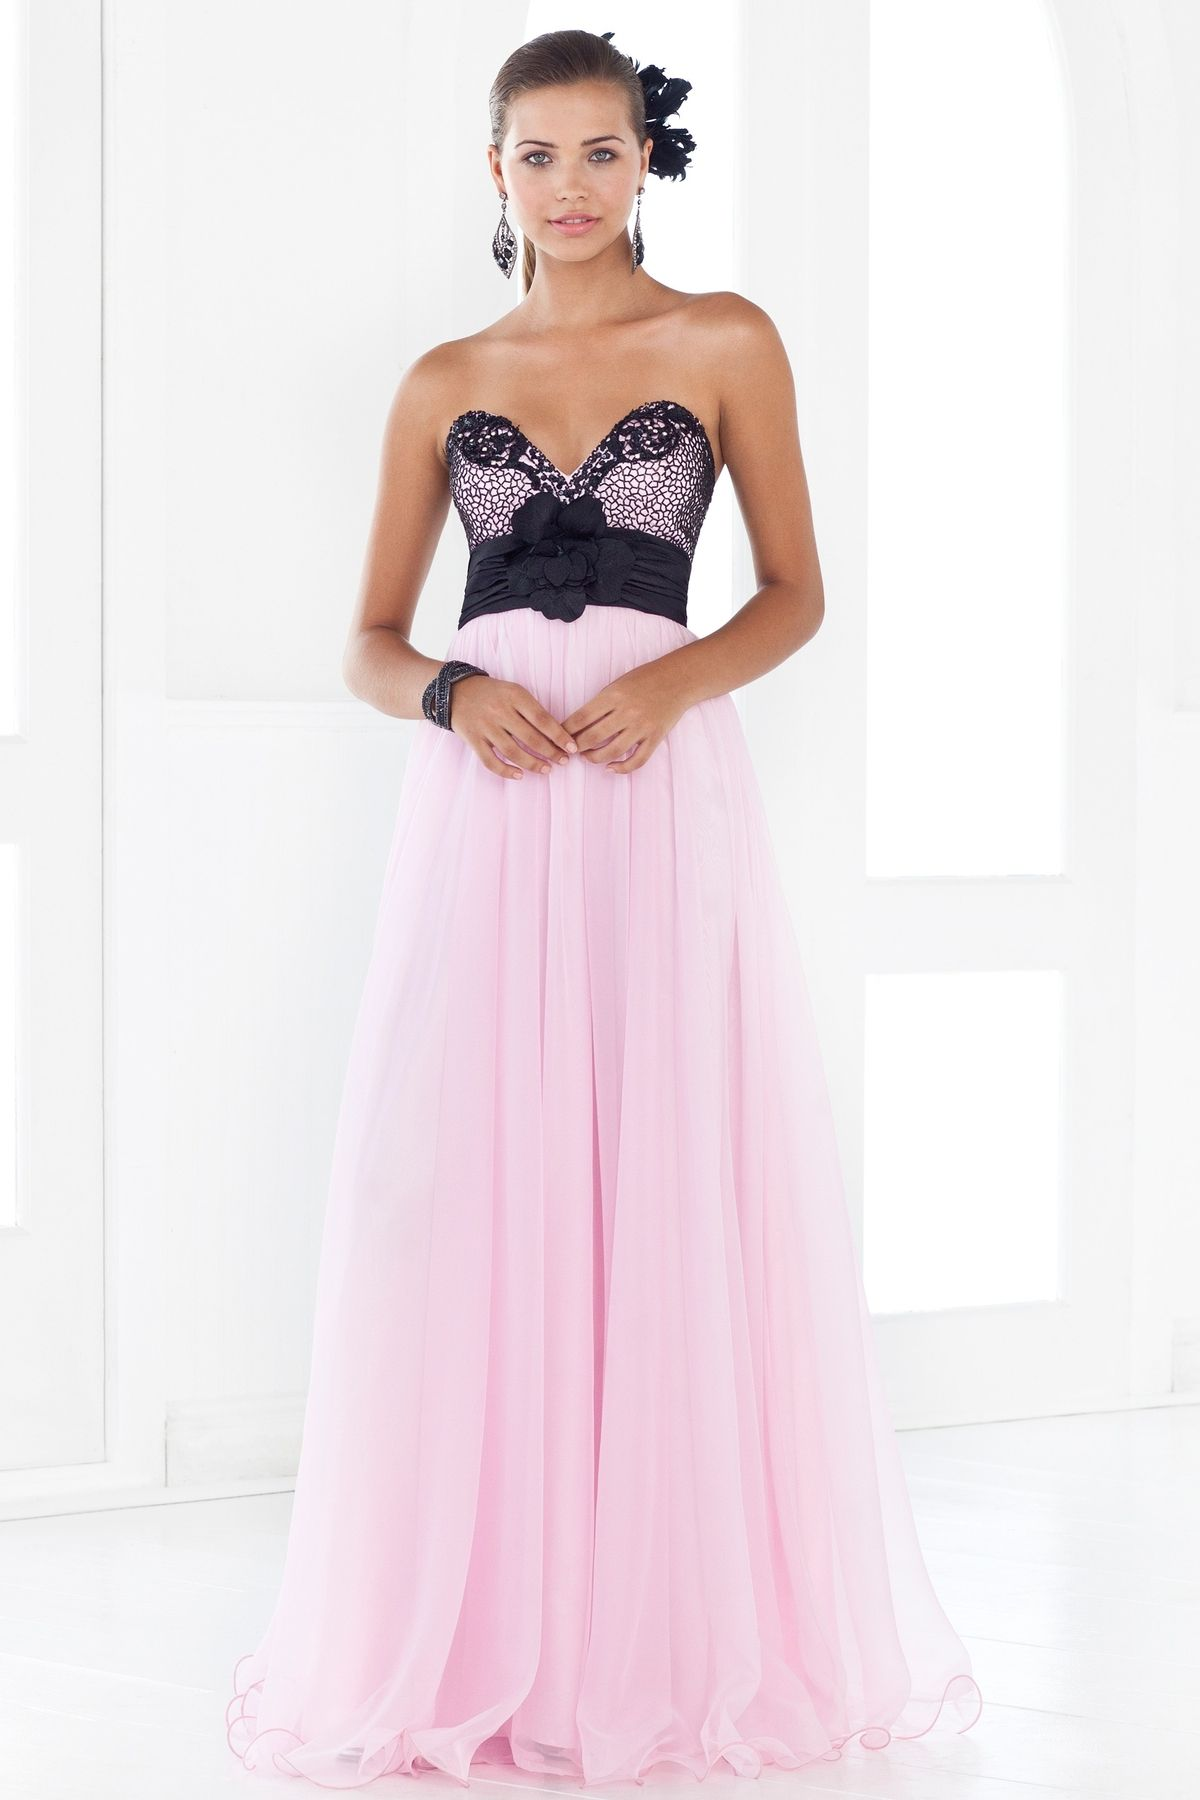 Flowy chiffon drama! This antique black print in delicate stones is ...